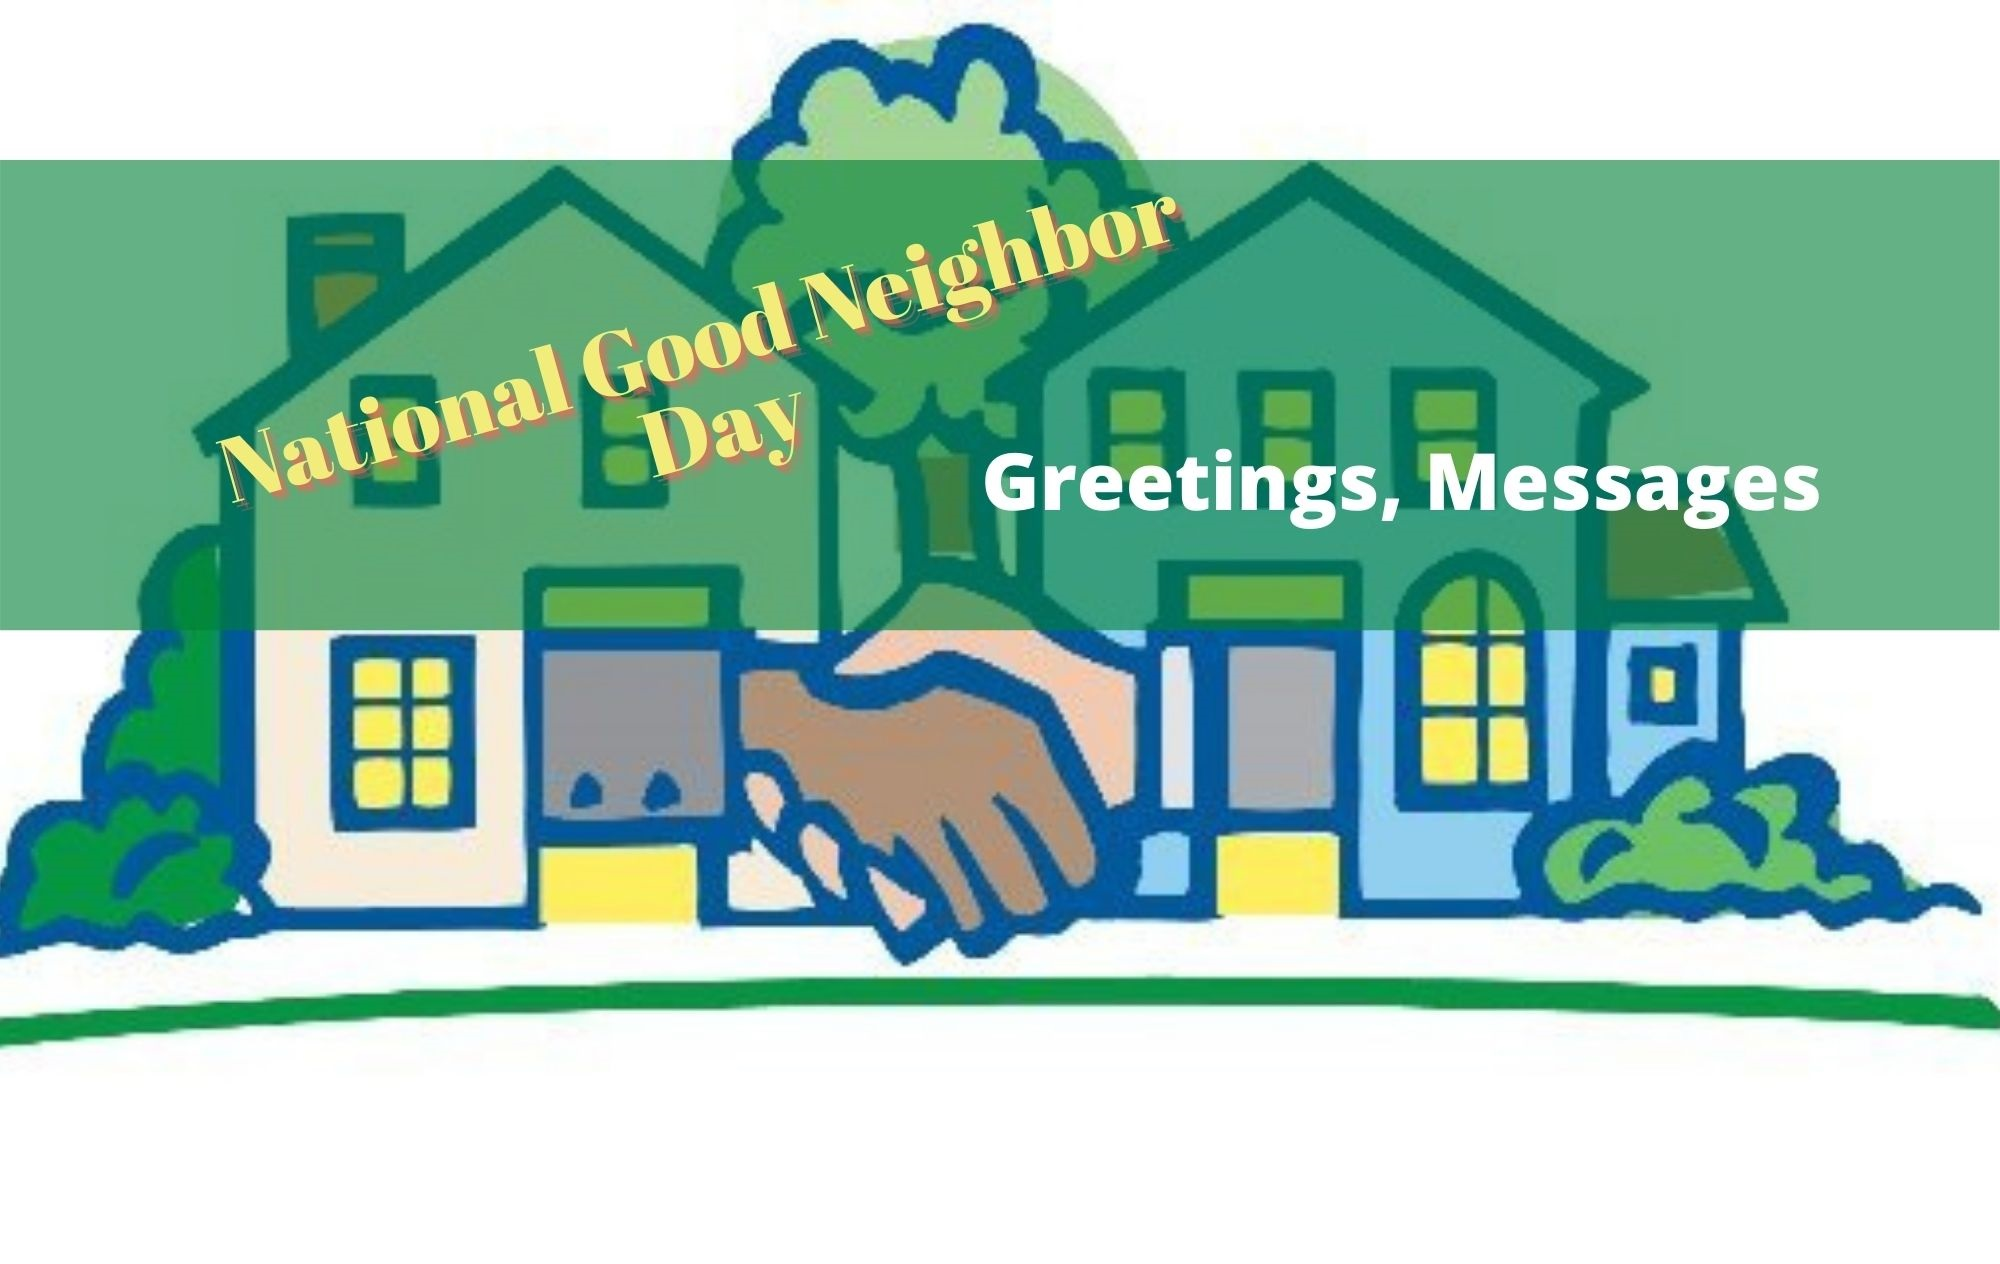 National Good Neighbor Day Greetings, Messages